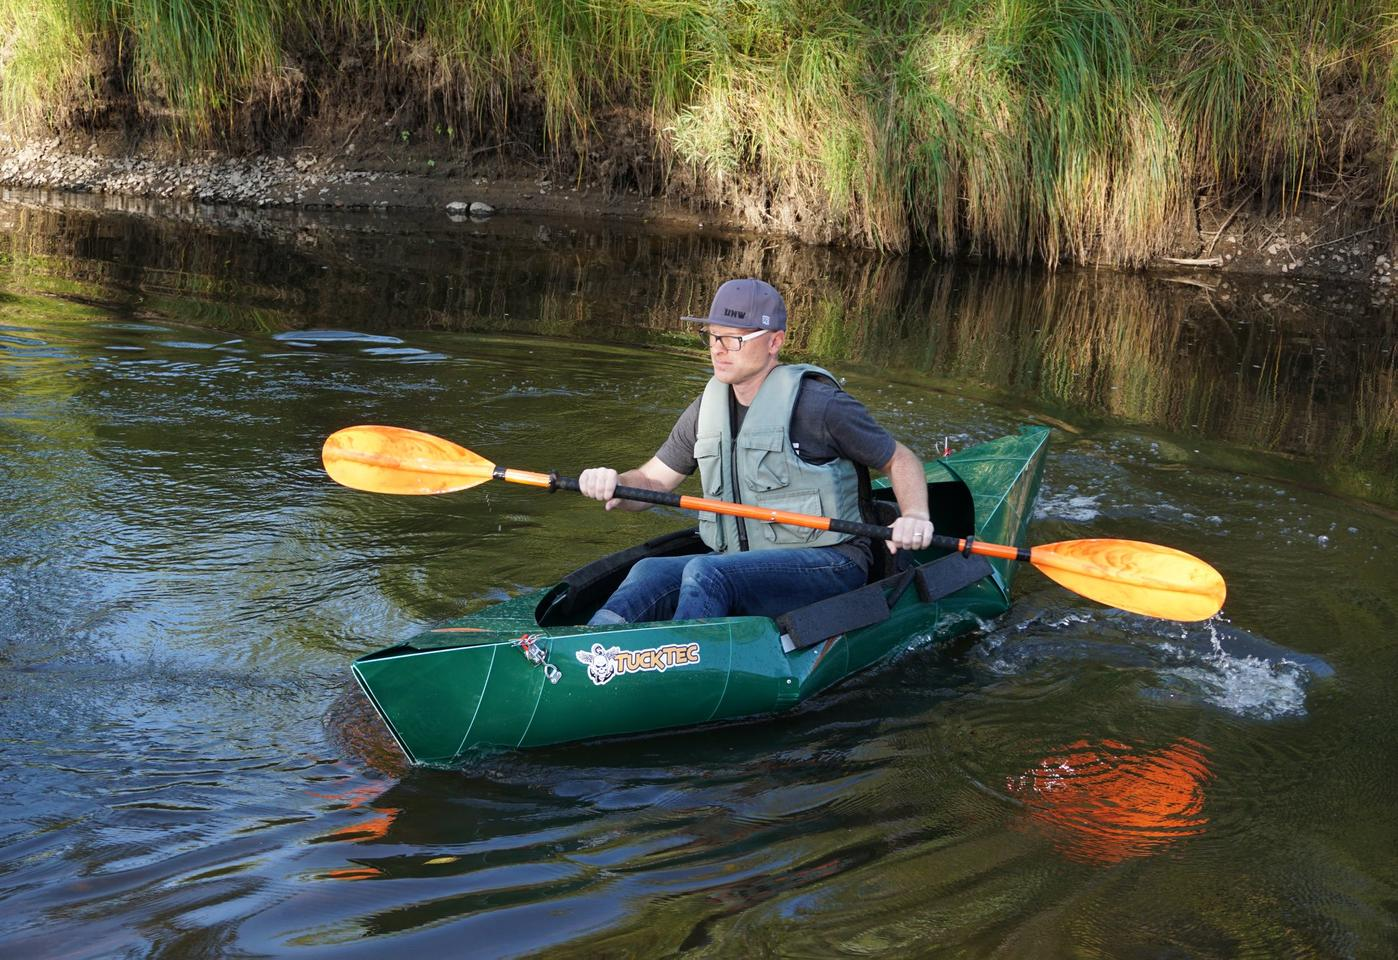 The Tucktec kayak is currently on Kickstarter